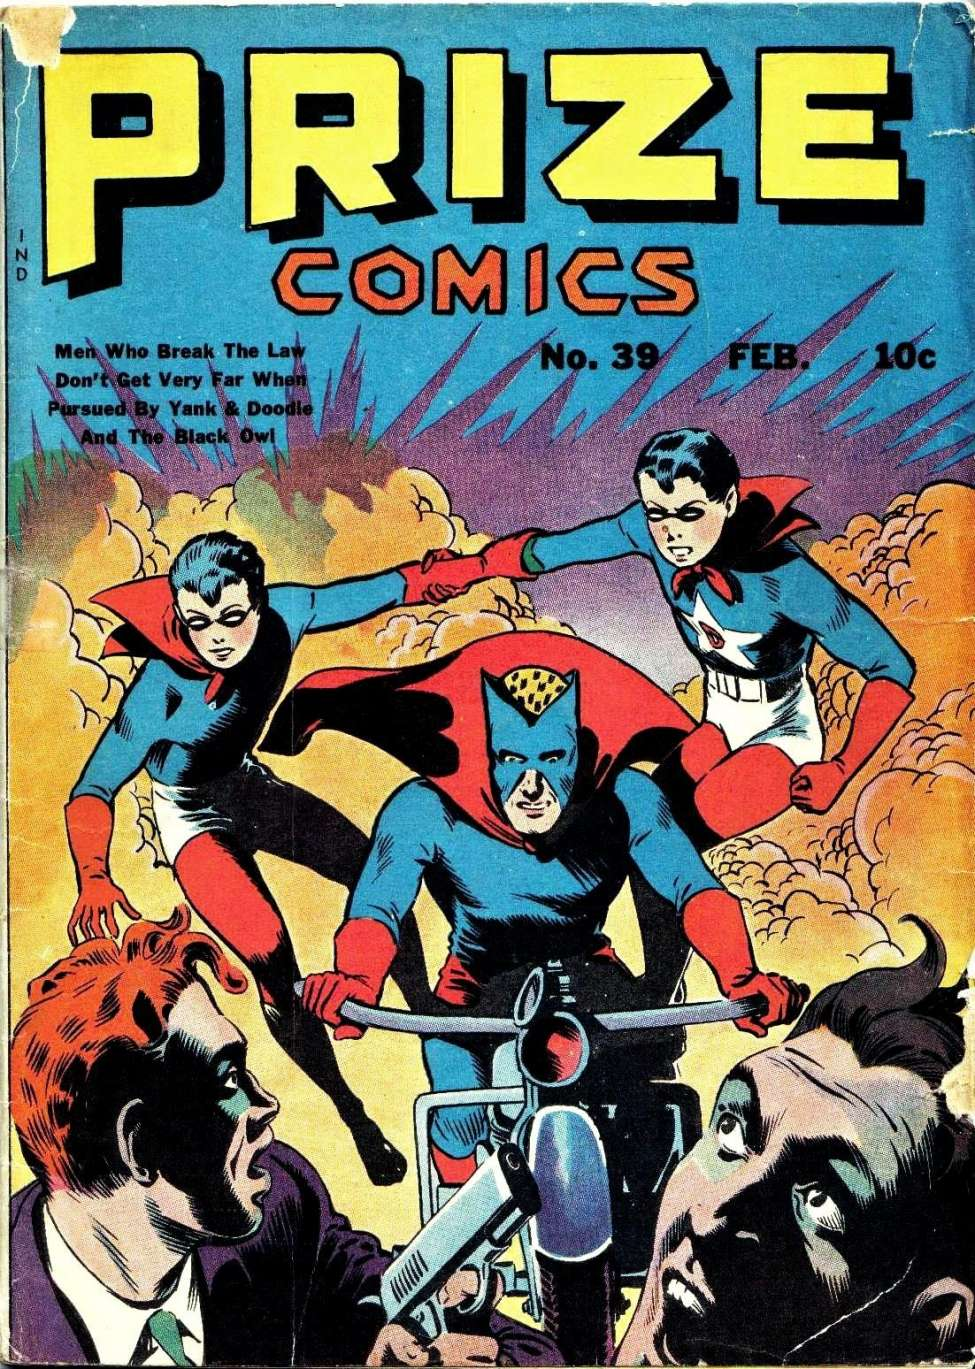 Comic Book Cover For Prize Comics v4 3 (39)